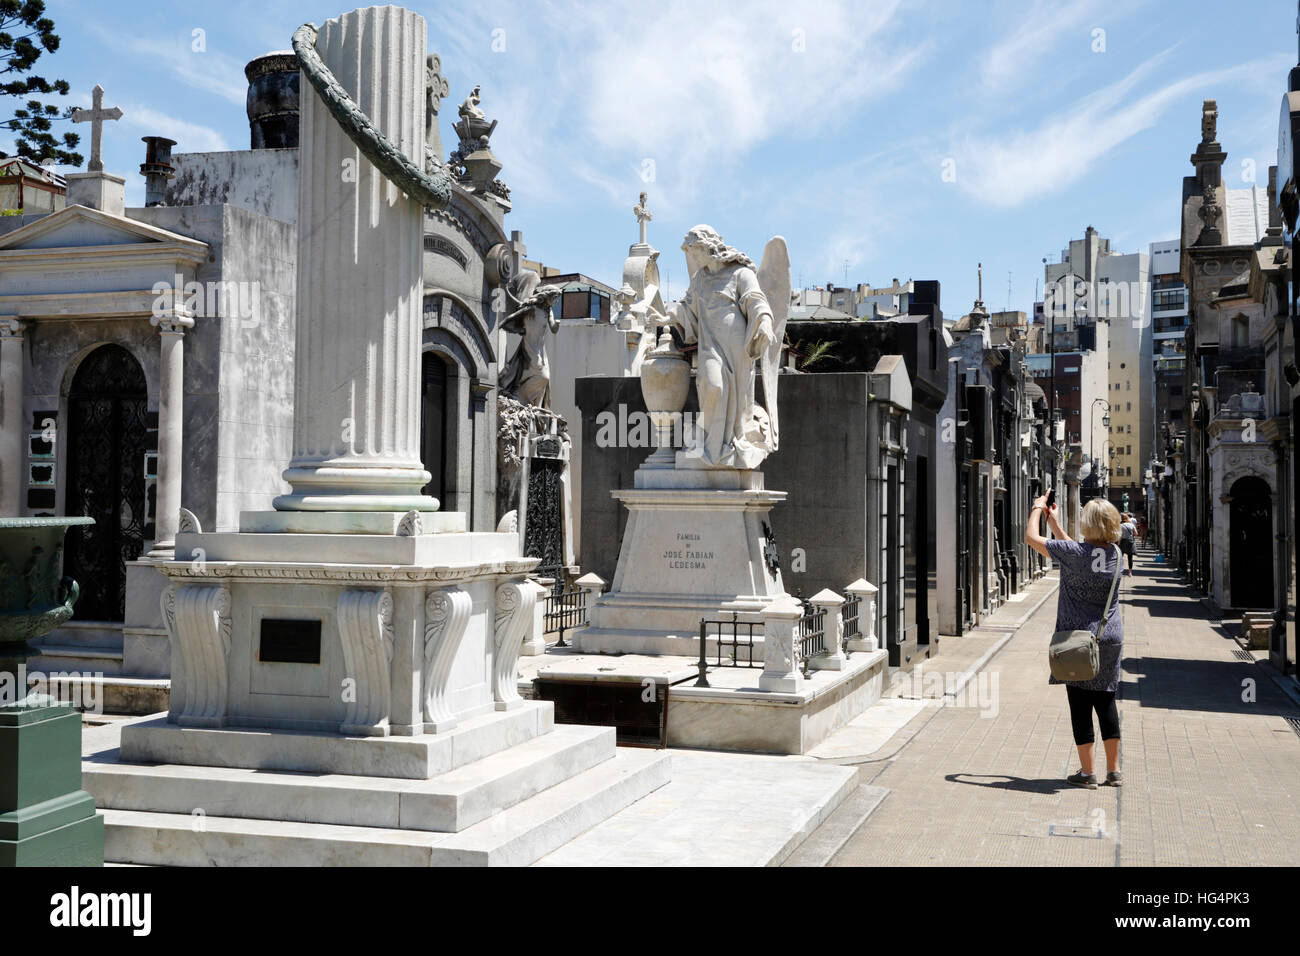 Family mausoleums in the Cementerio de la Recoleta, Buenos Aires, Argentina, South America - Stock Image